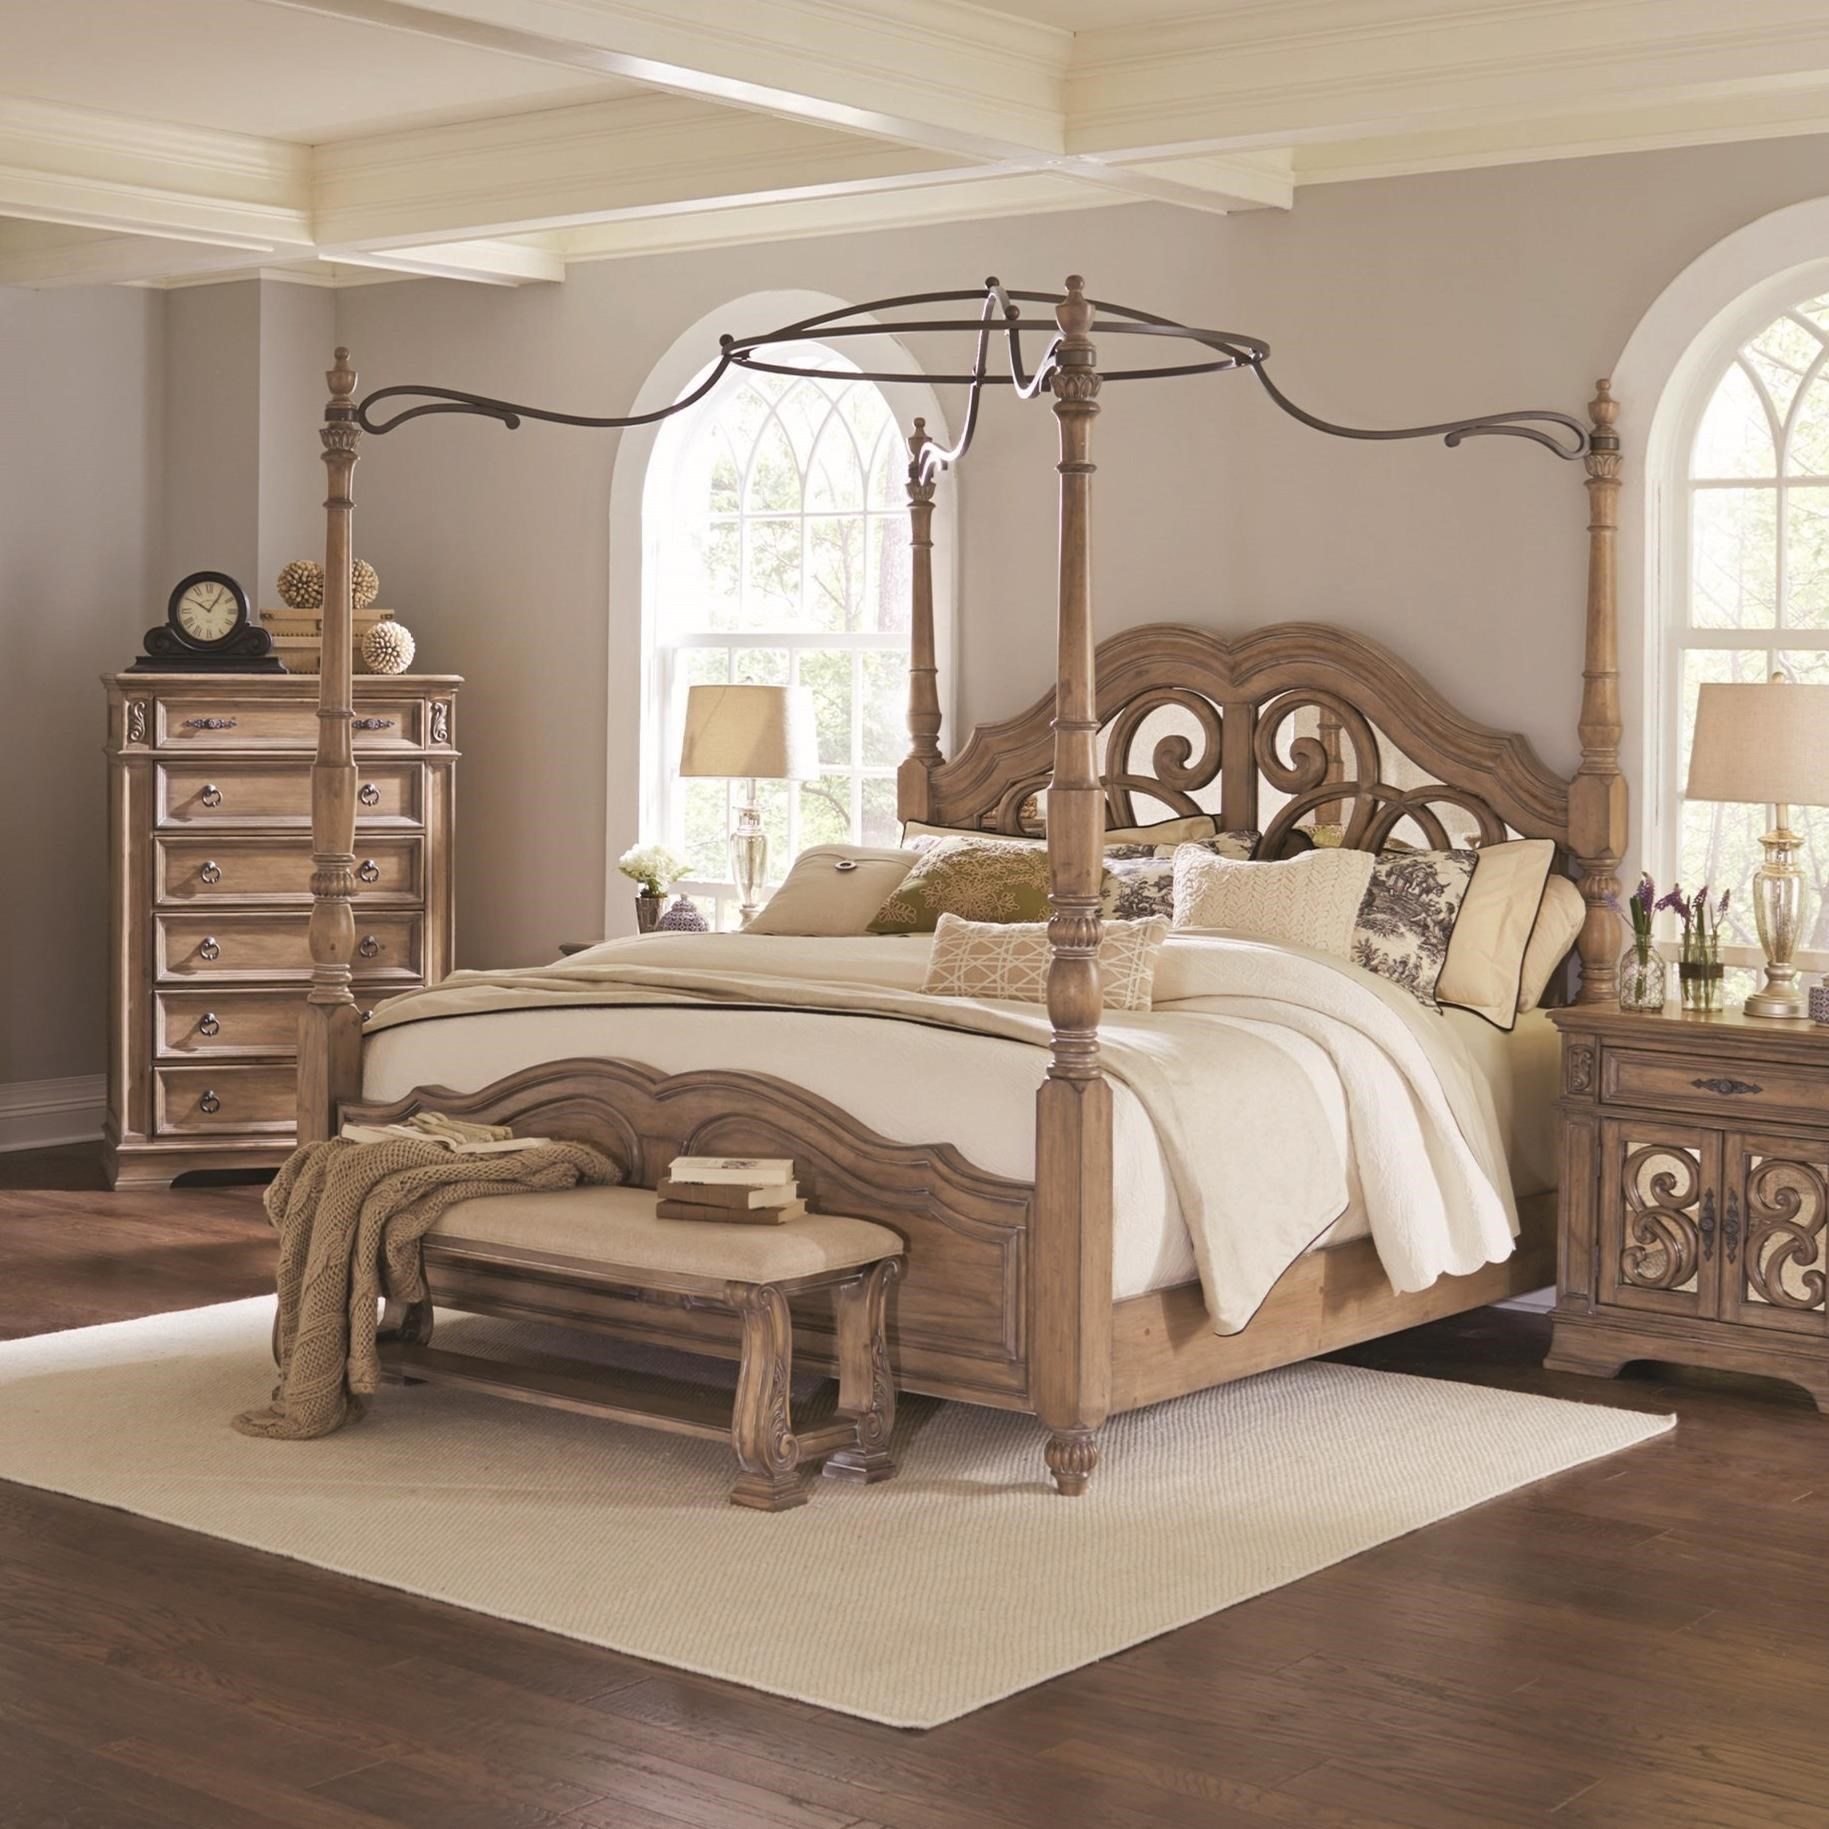 Acme Furniture Roman Empire Queen Canopy Bed Dream Home